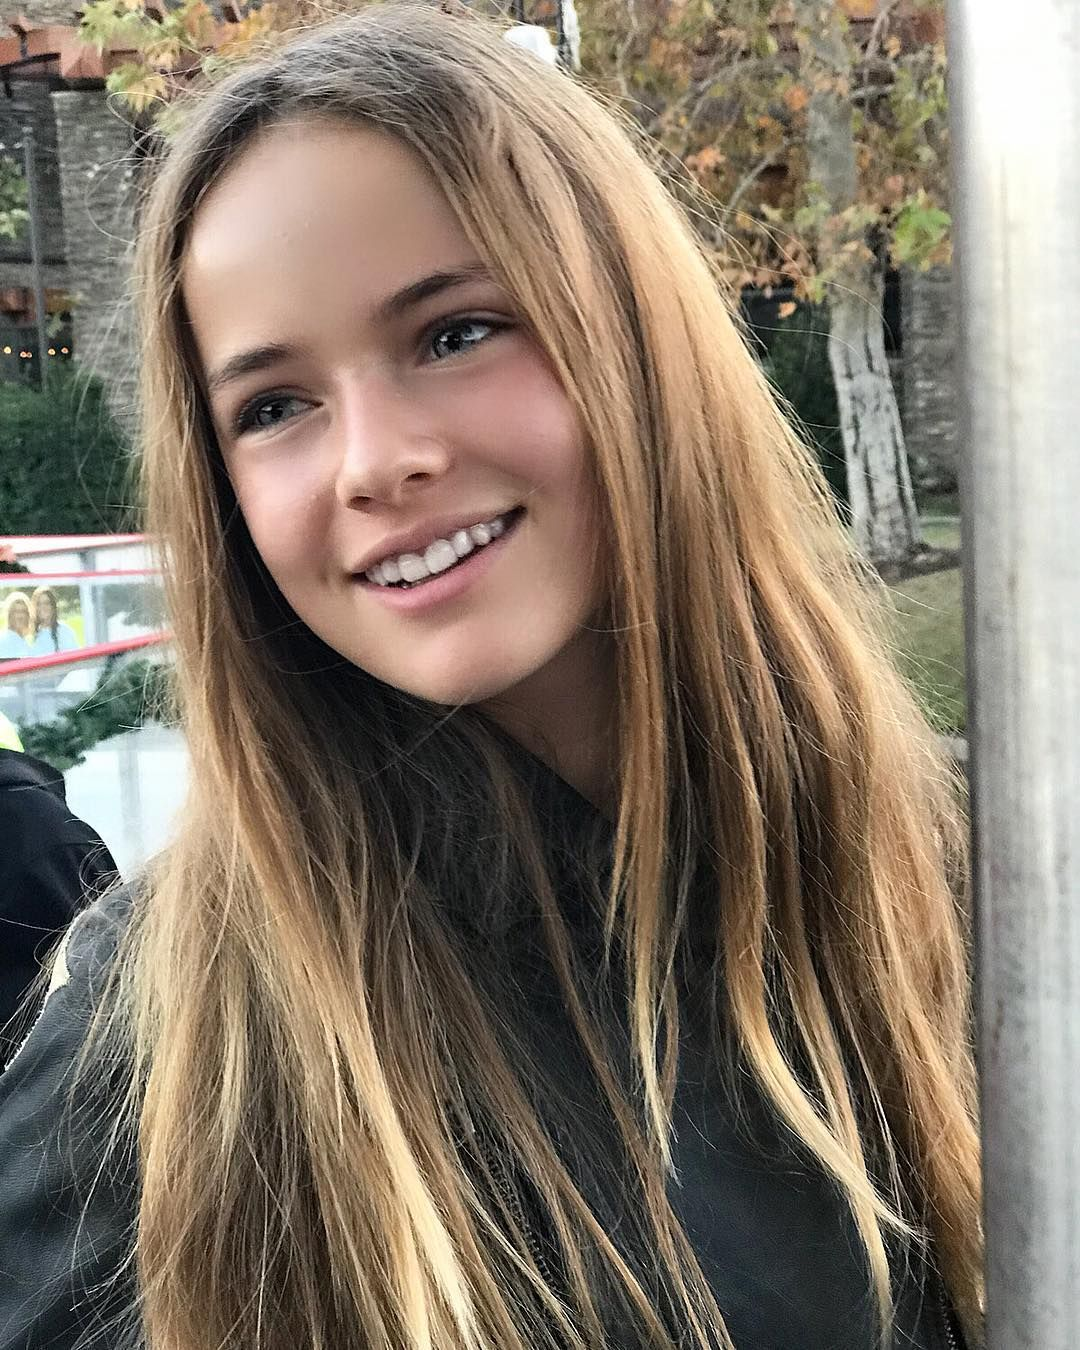 2m Followers, 37 Following, 1,310 Posts - See Instagram photos and videos from Kristina Pimenova ...